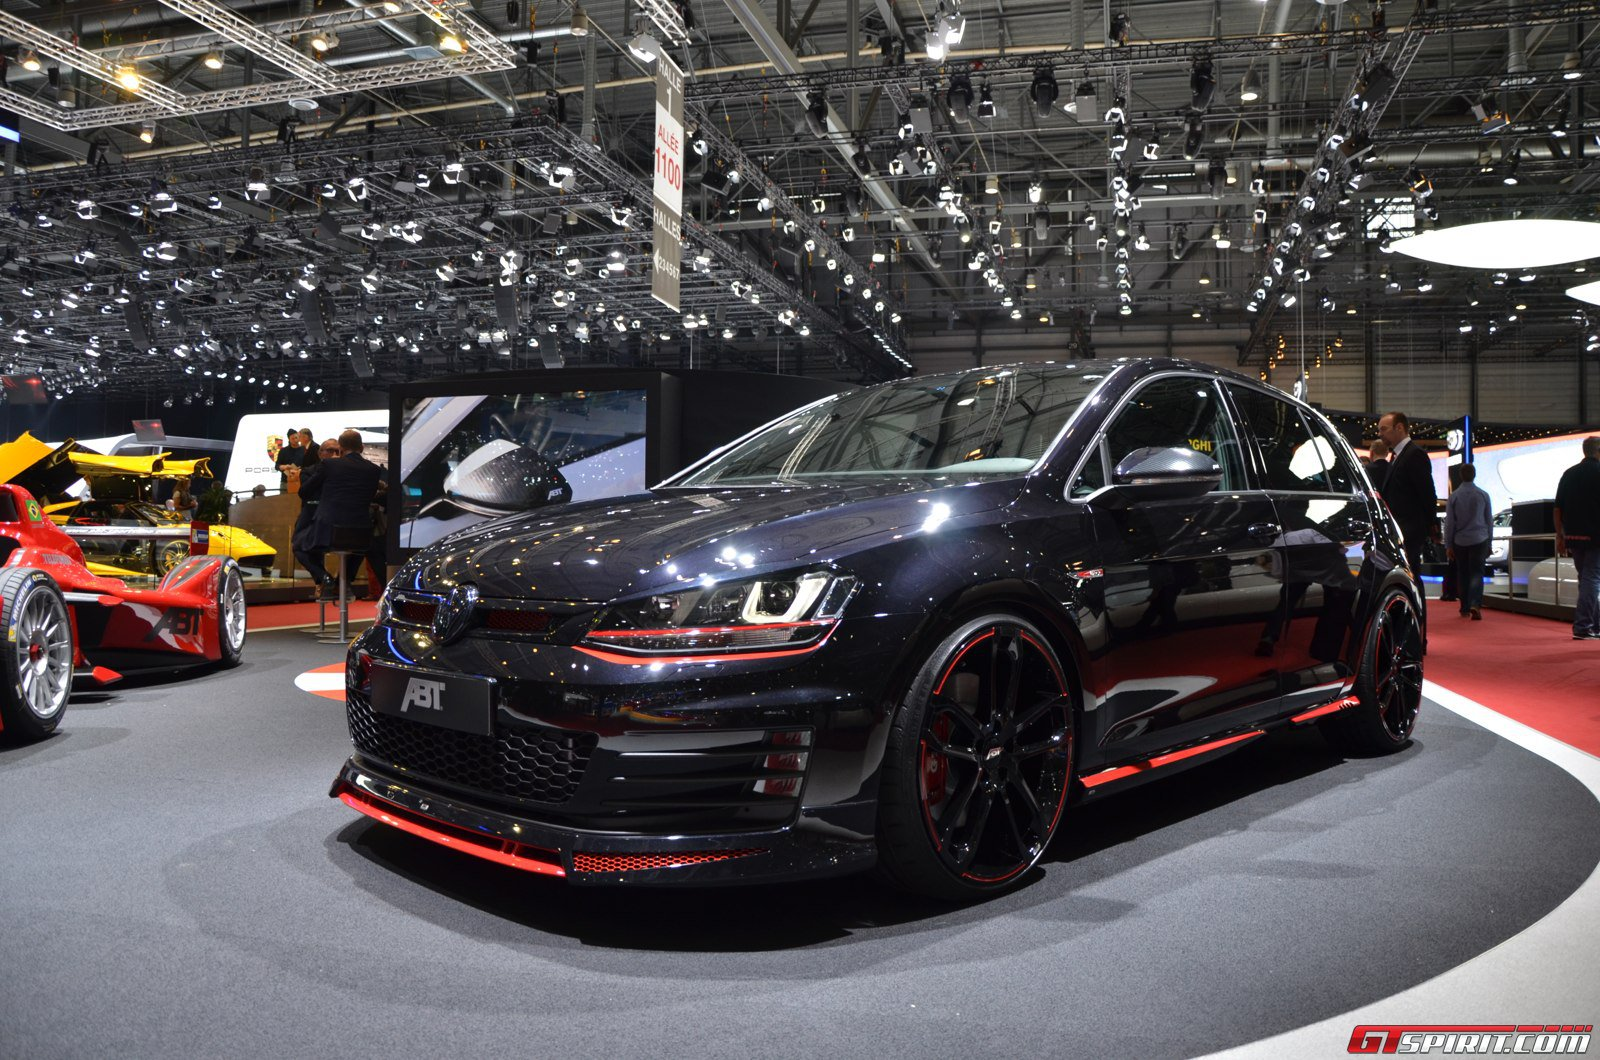 geneva 2014 abt golf vii gti dark edition gtspirit. Black Bedroom Furniture Sets. Home Design Ideas